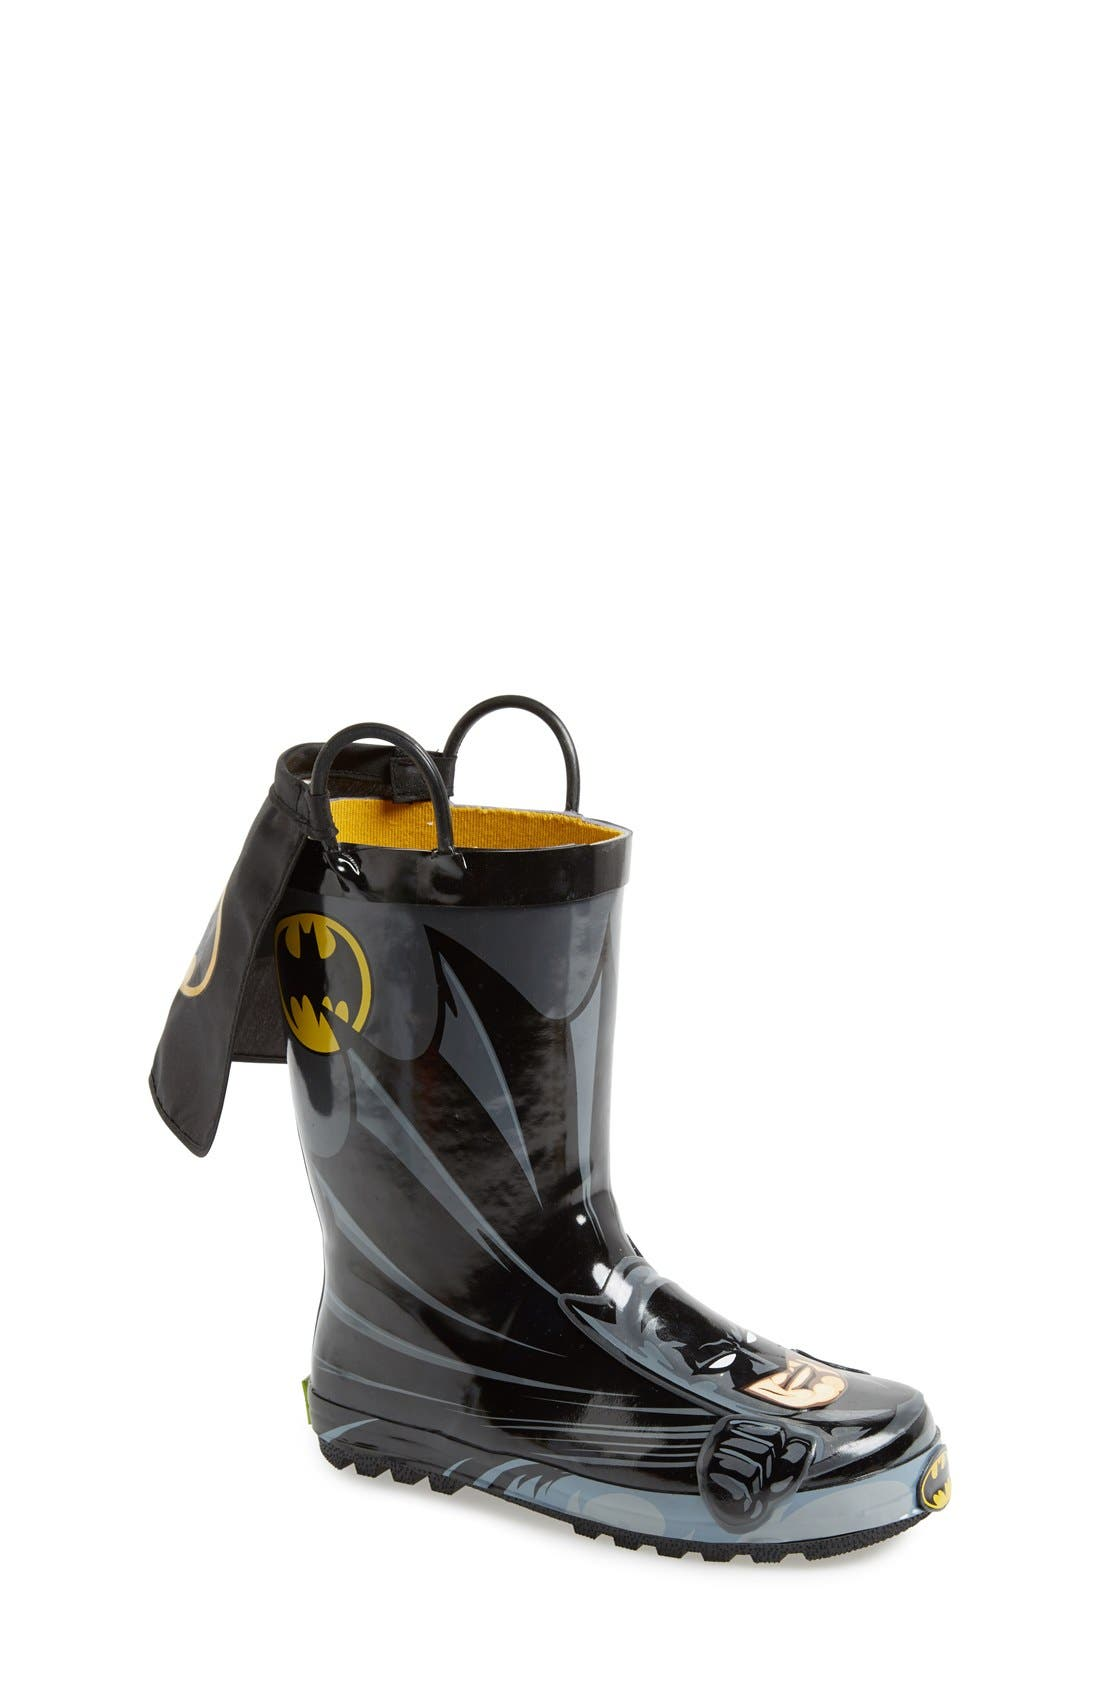 WESTERN CHIEF, Batman Everlasting Waterproof Rain Boot, Main thumbnail 1, color, BLACK/ BLACK